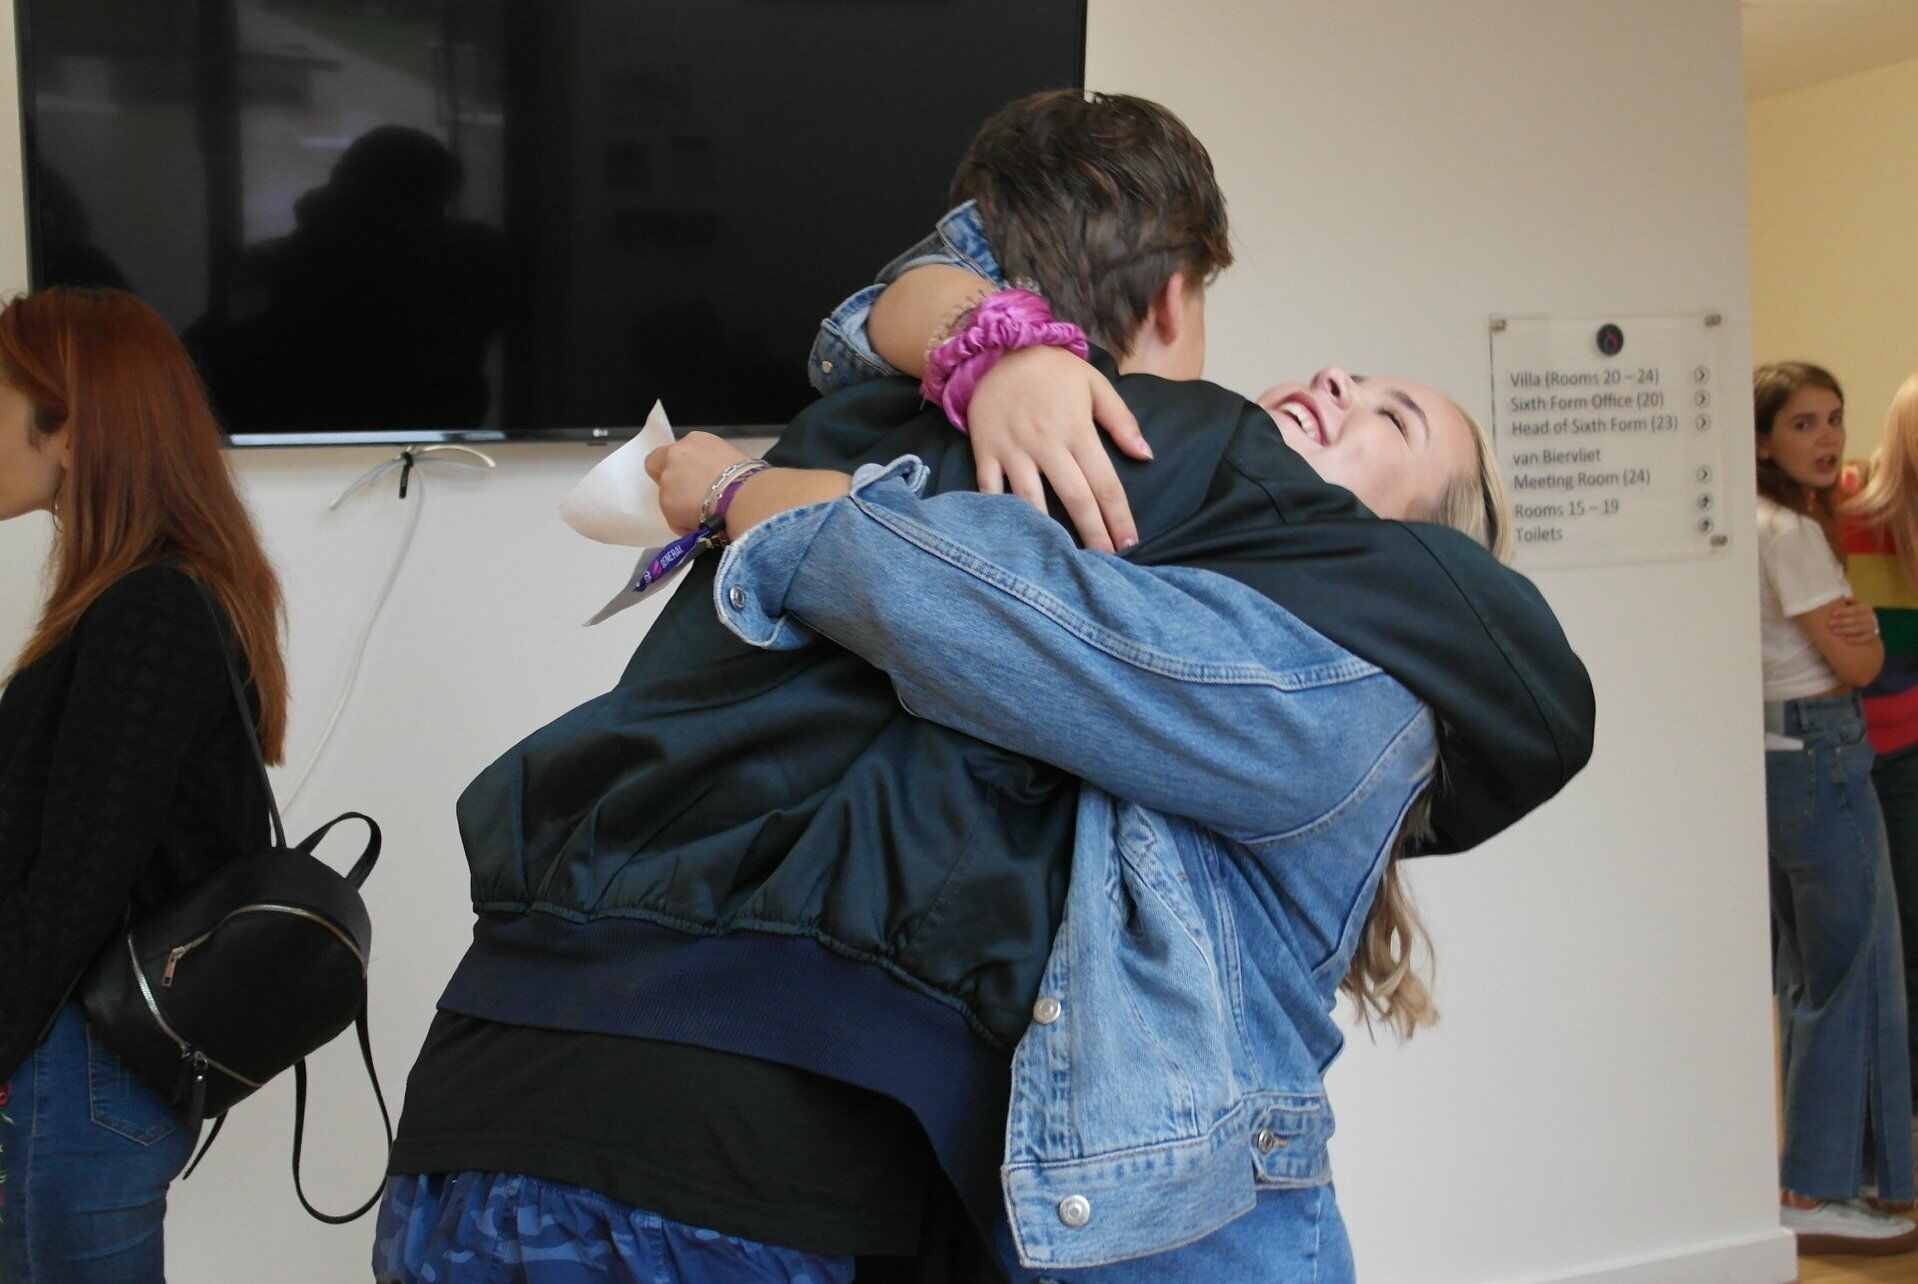 d'Overbroeck students celebrate A-level results